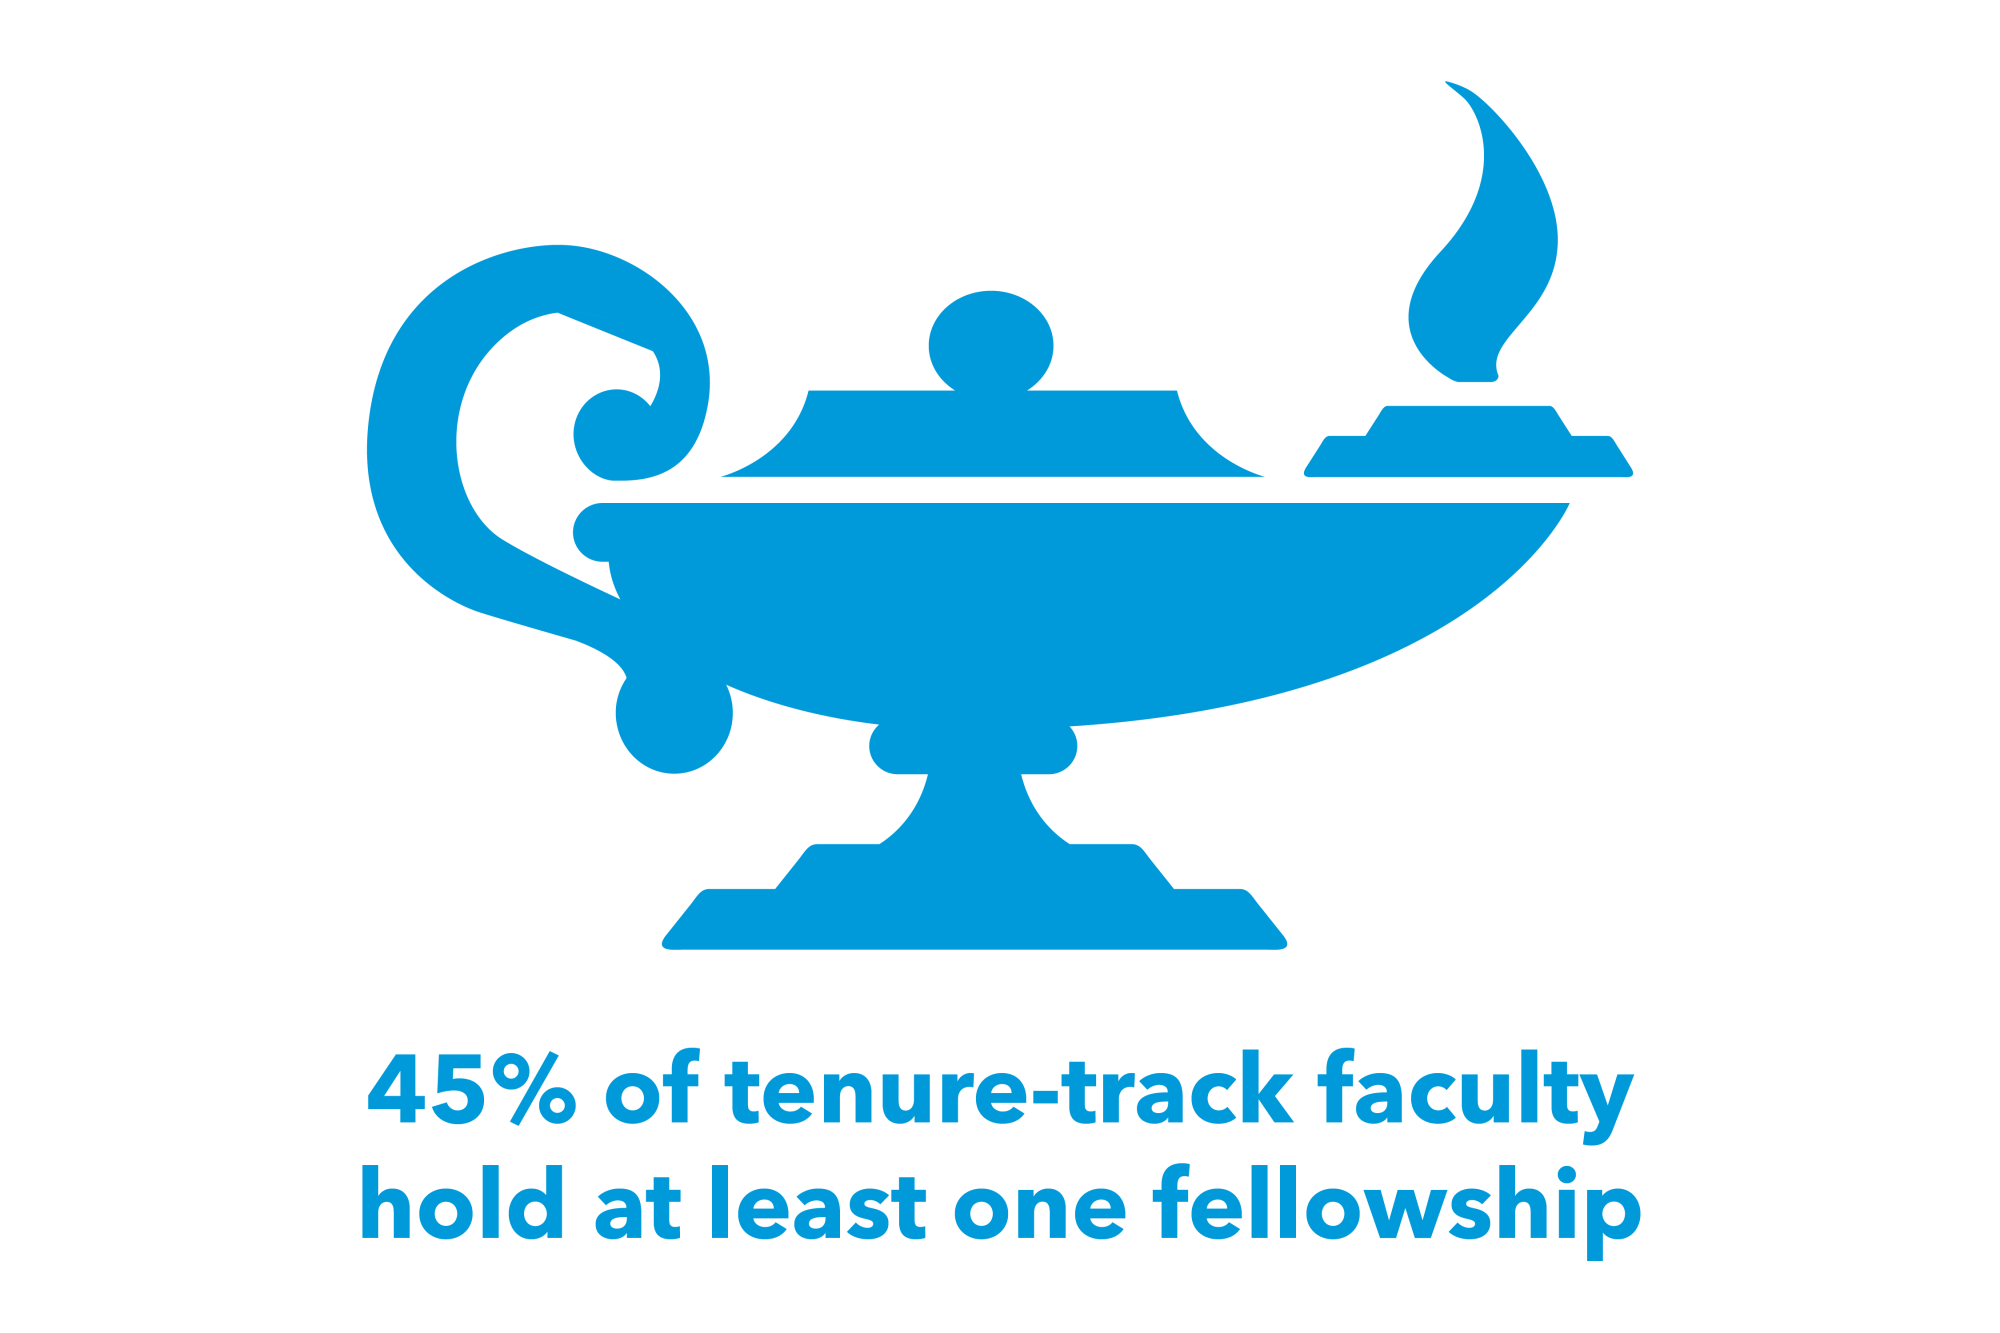 45% of tenure-track faculty hold at least one fellowship